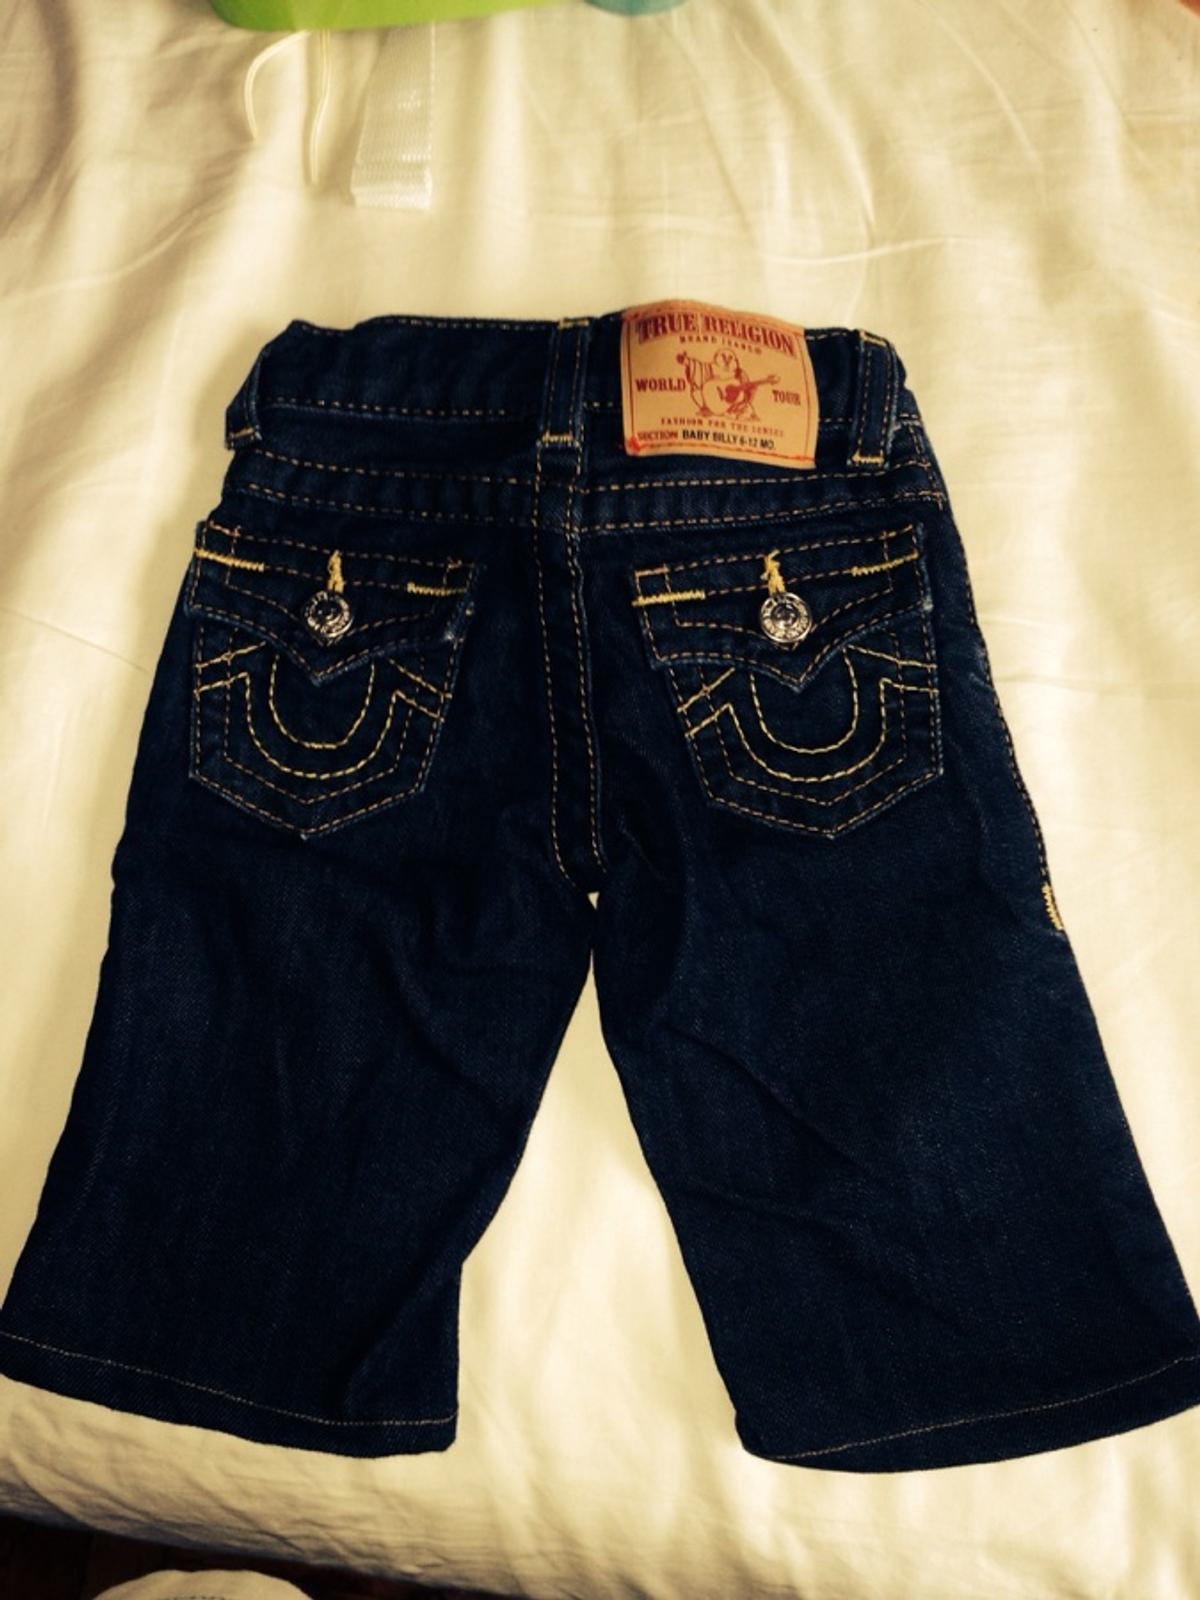 8d2f72320 Description. Brand new 100% official true religion brand jeans for infants.